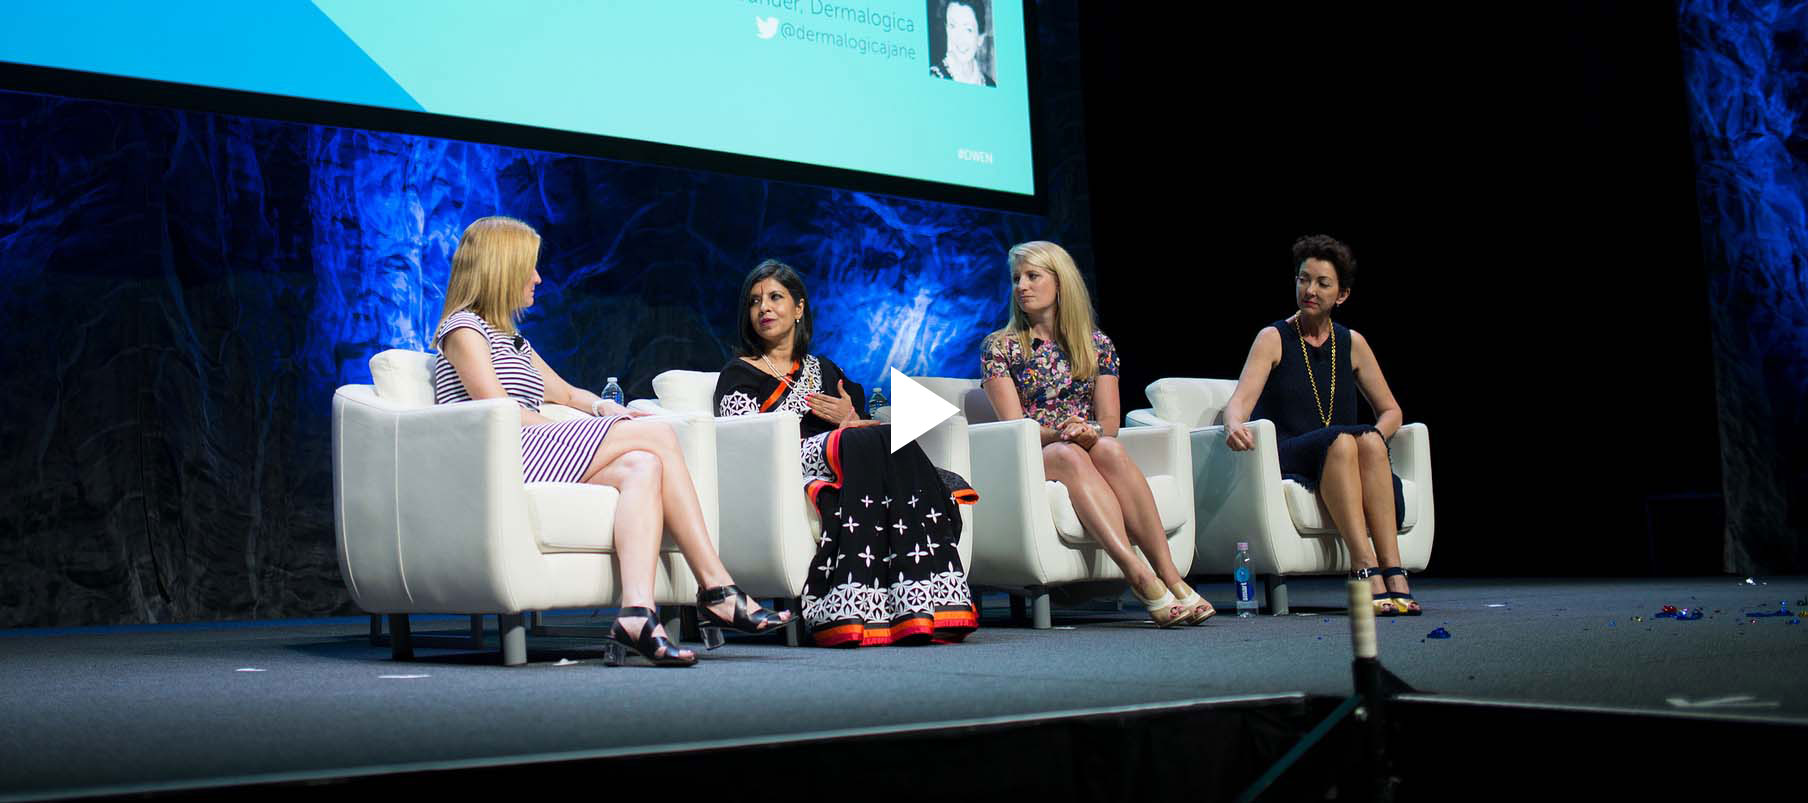 Highlights from the Dell Women's Enterpreneur Network